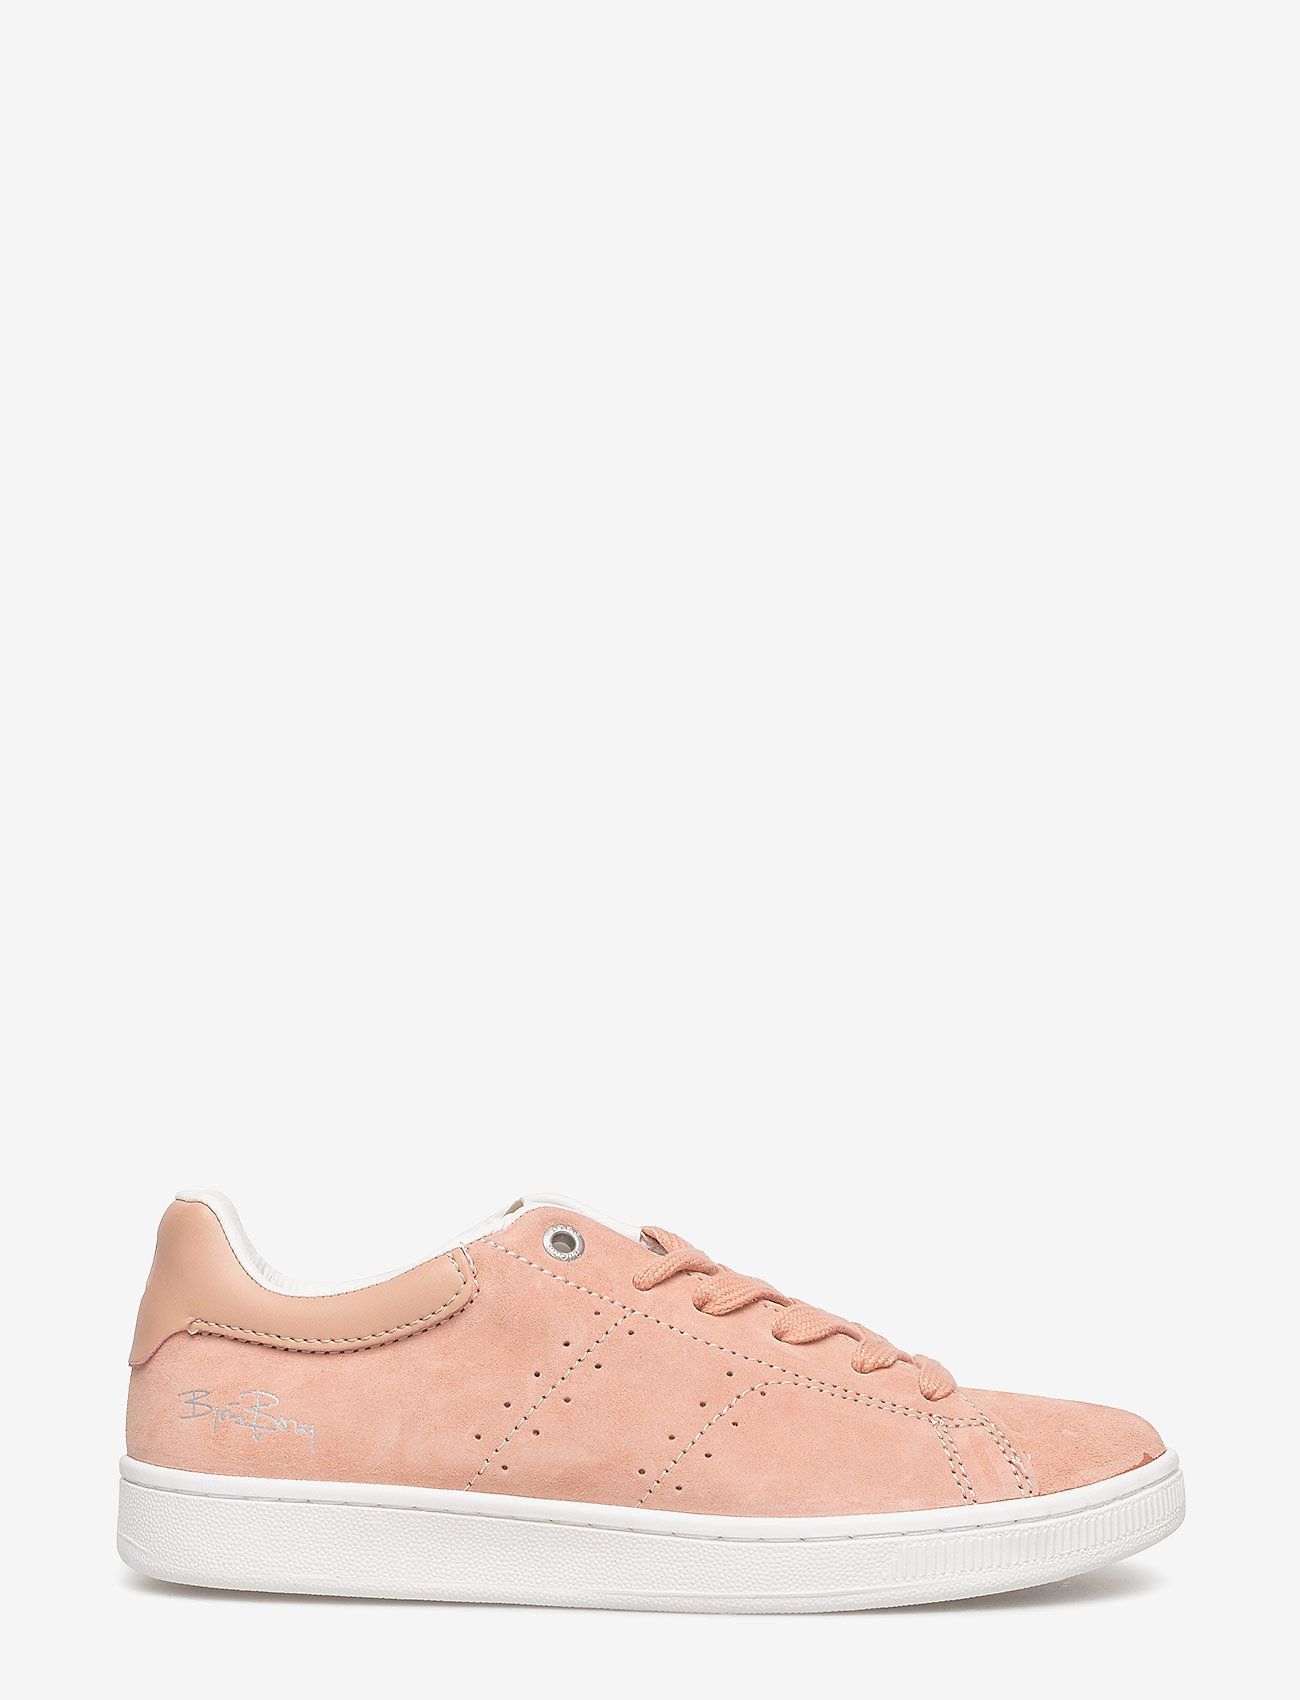 Björn Borg - T340 Low Wsh W - low top sneakers - light pink - 1